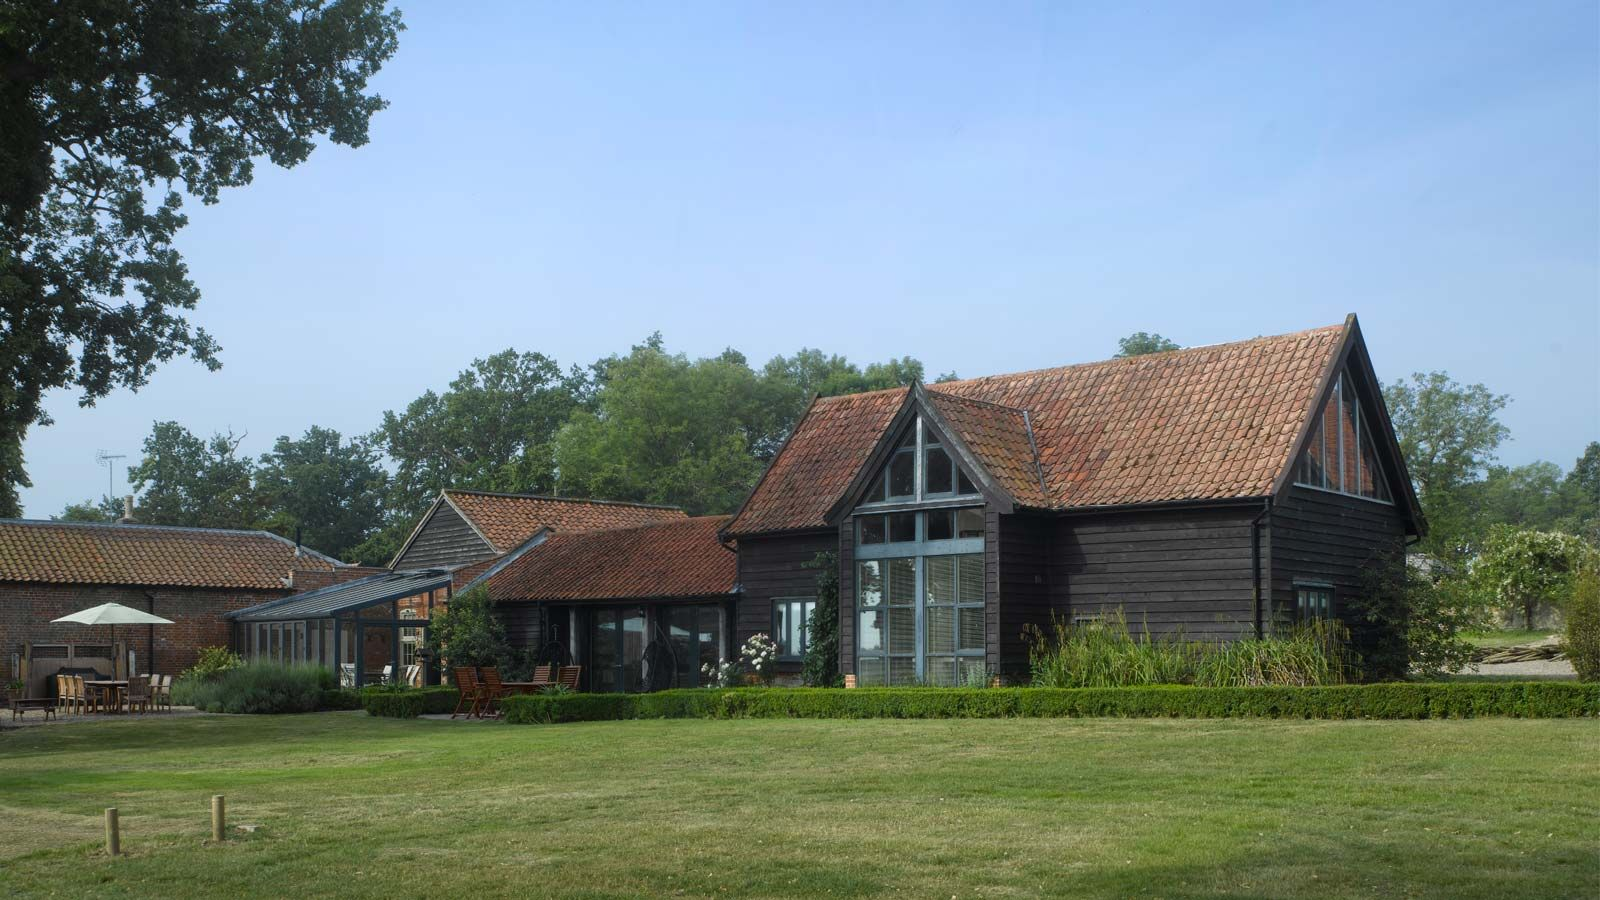 This thcentury suffolk barn is luxurious stylish and perfect for